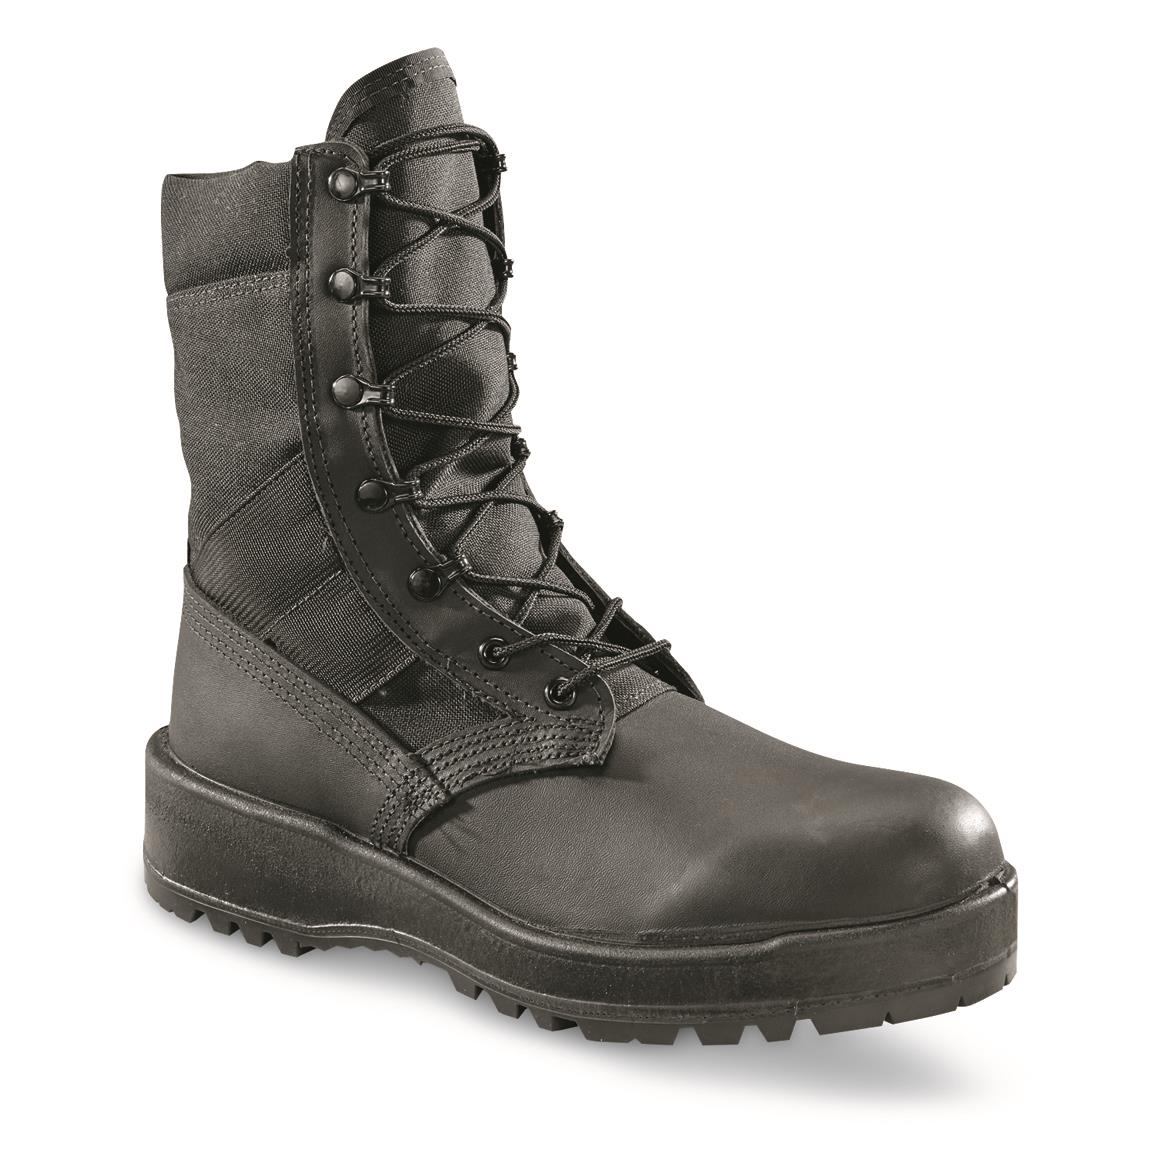 U.S. Military Surplus Altama Hot Weather Boot, New, Black